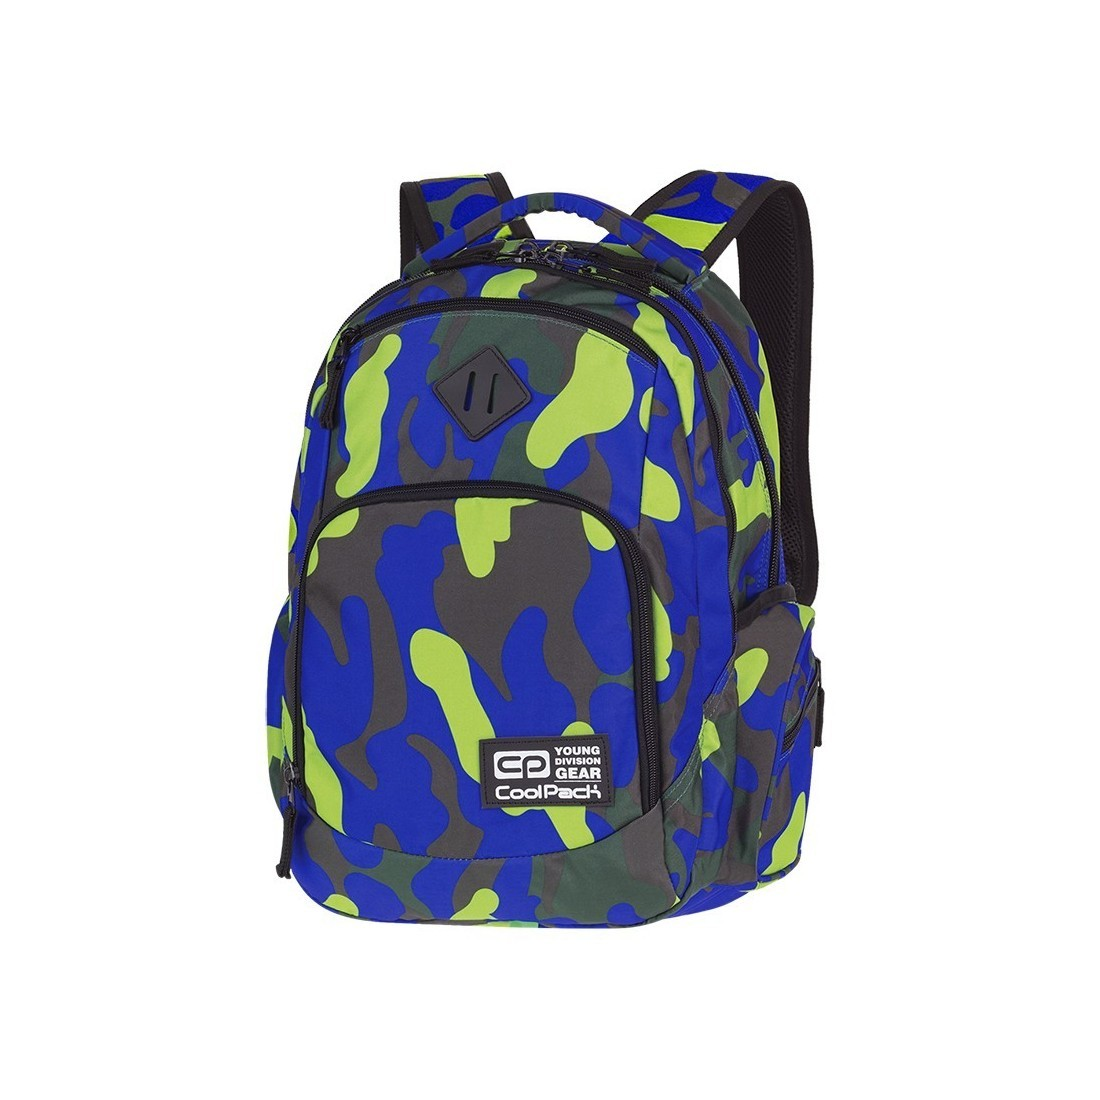 e9d8422476867 Plecak szkolny COOLPACK CP BREAK CAMOUFLAGE LIME dla uczniów limonkowe moro  - A347